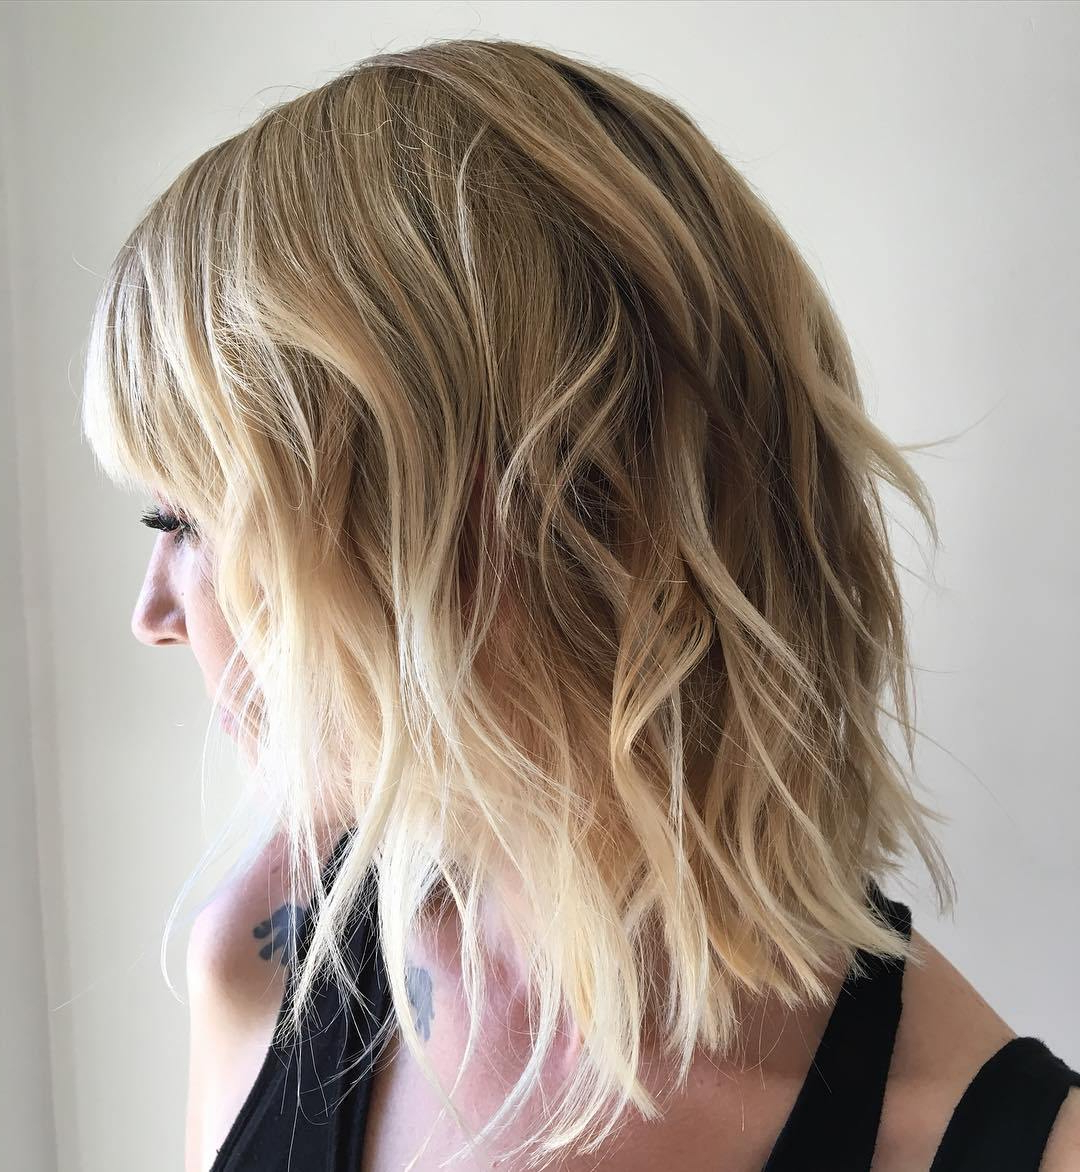 25 Alluring Bob Hairstyles For Fine Hair – Latest Bob Hair Regarding White Blonde Curly Layered Bob Hairstyles (View 13 of 20)